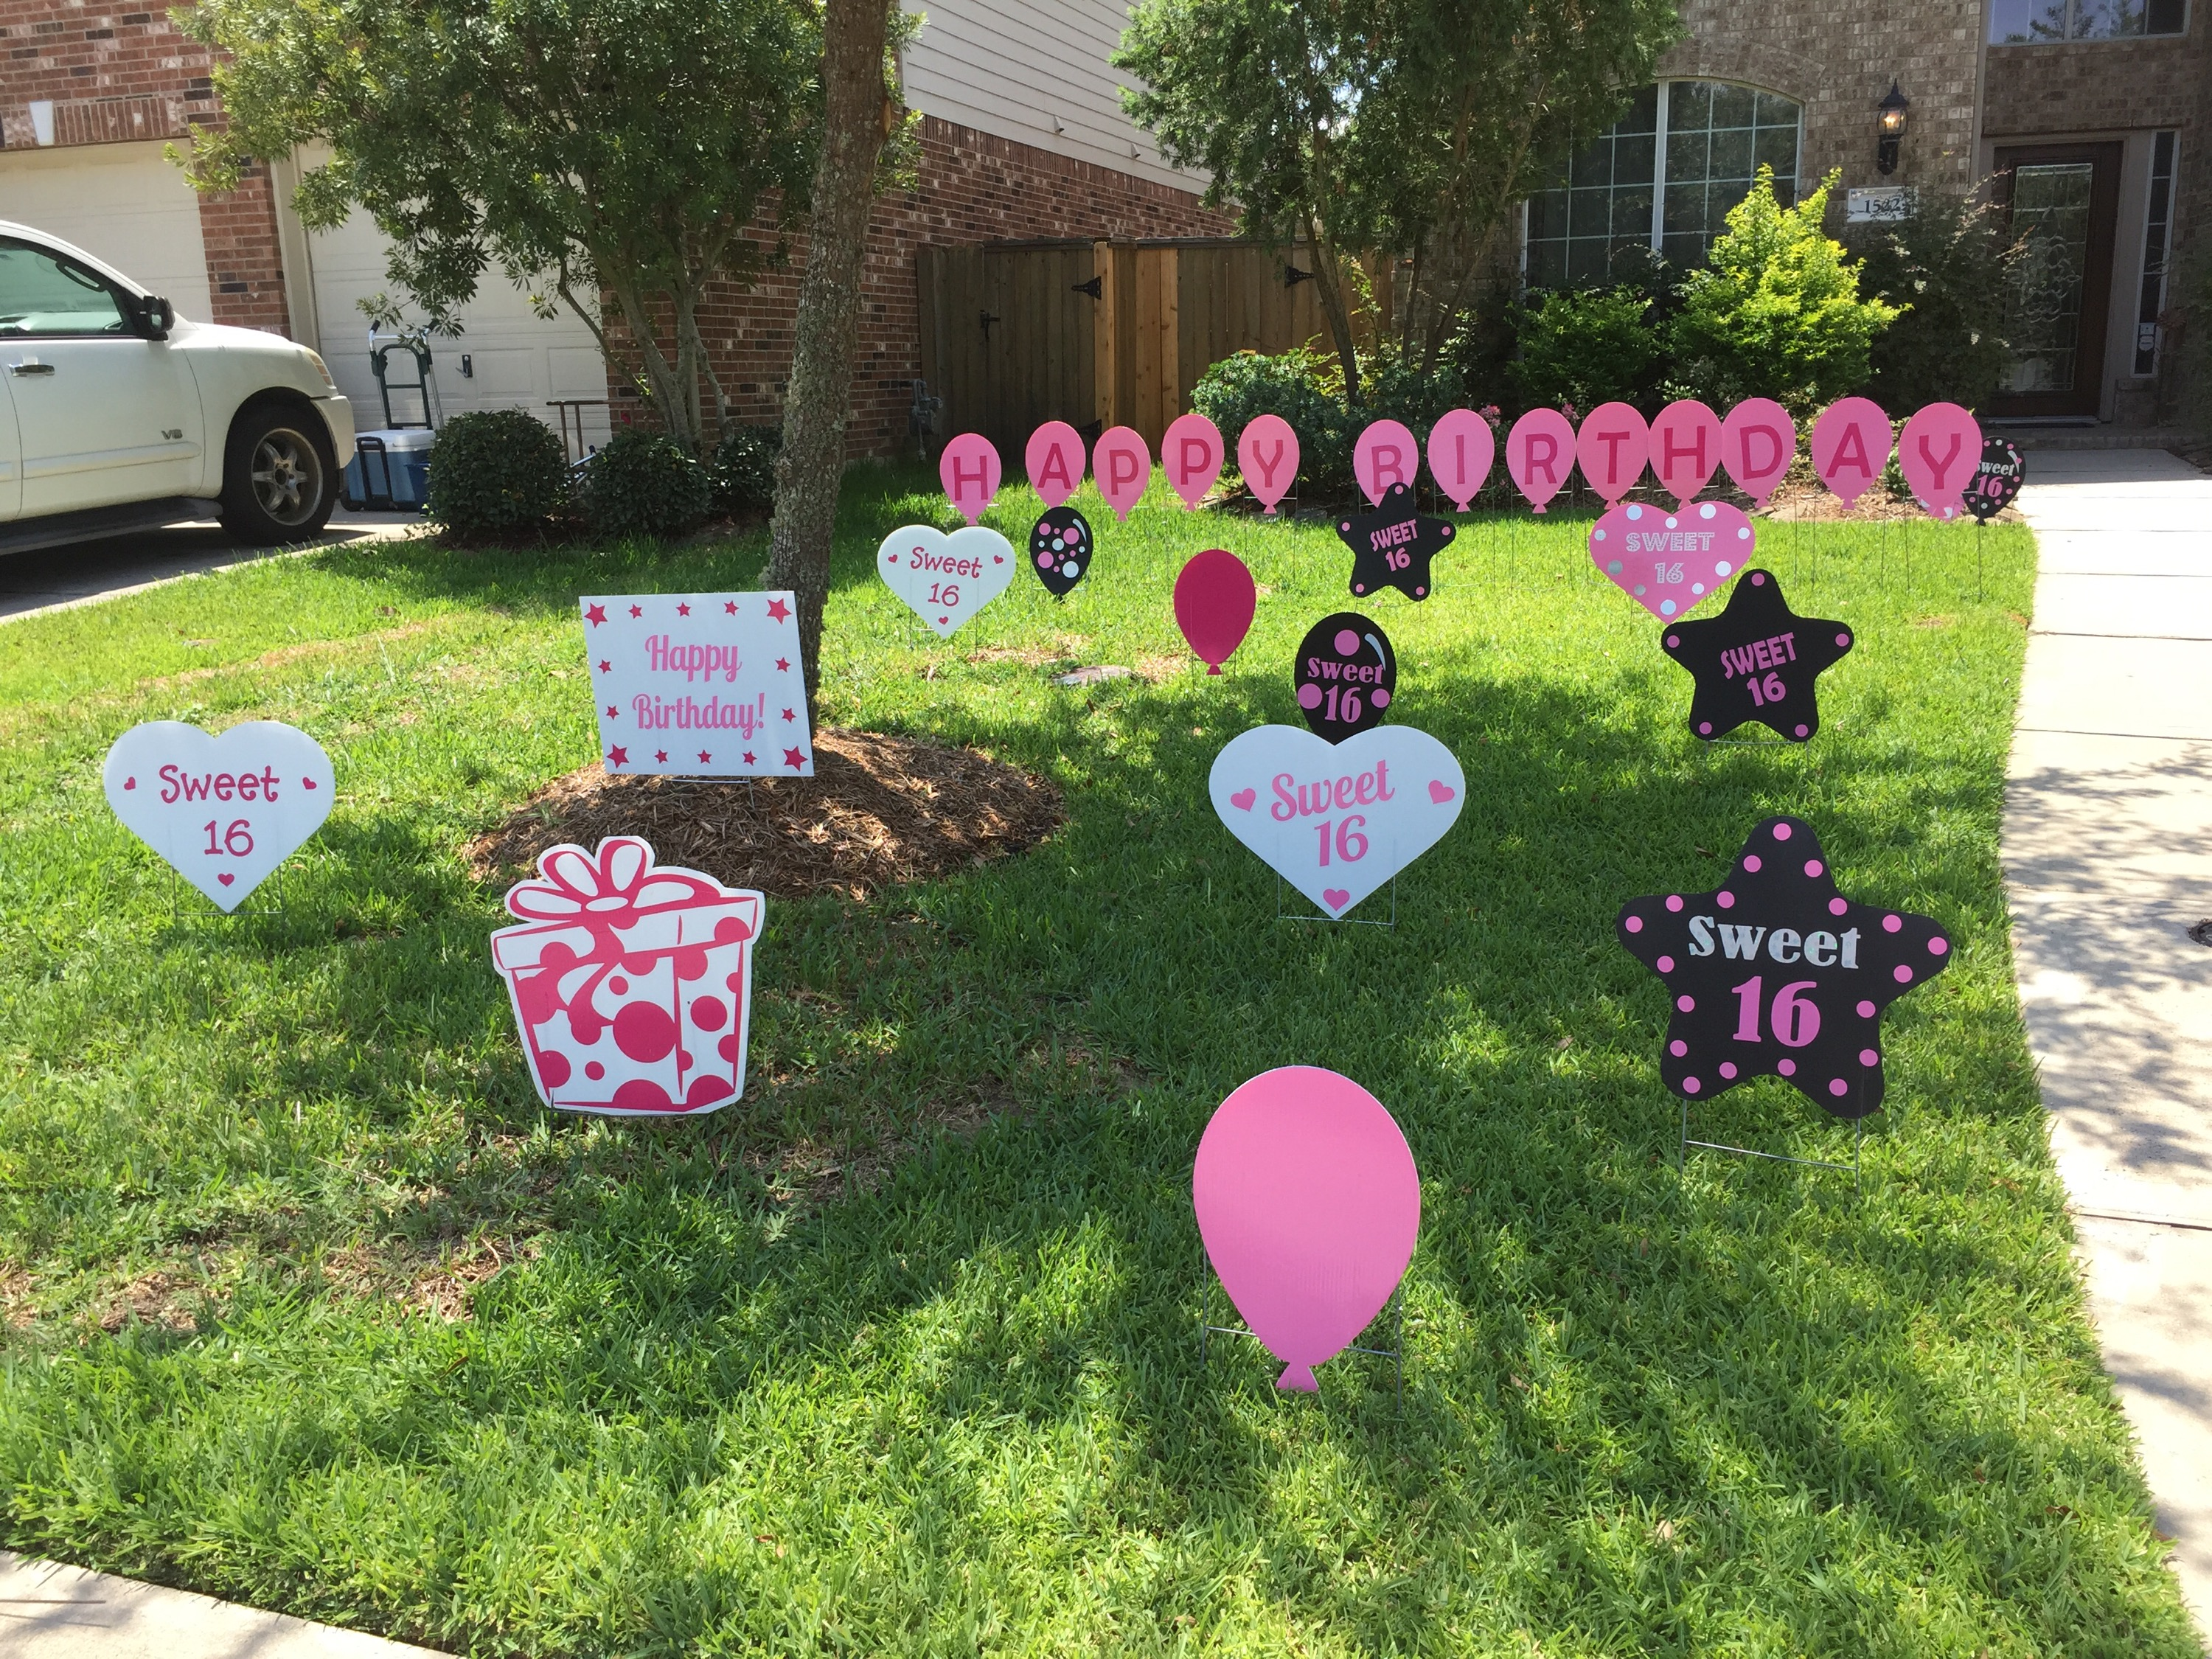 Birthday Signs Our Bling Sweet 16 Stars Balloons It Also Included Adorable Happy Pink Balloon Lawn Letters